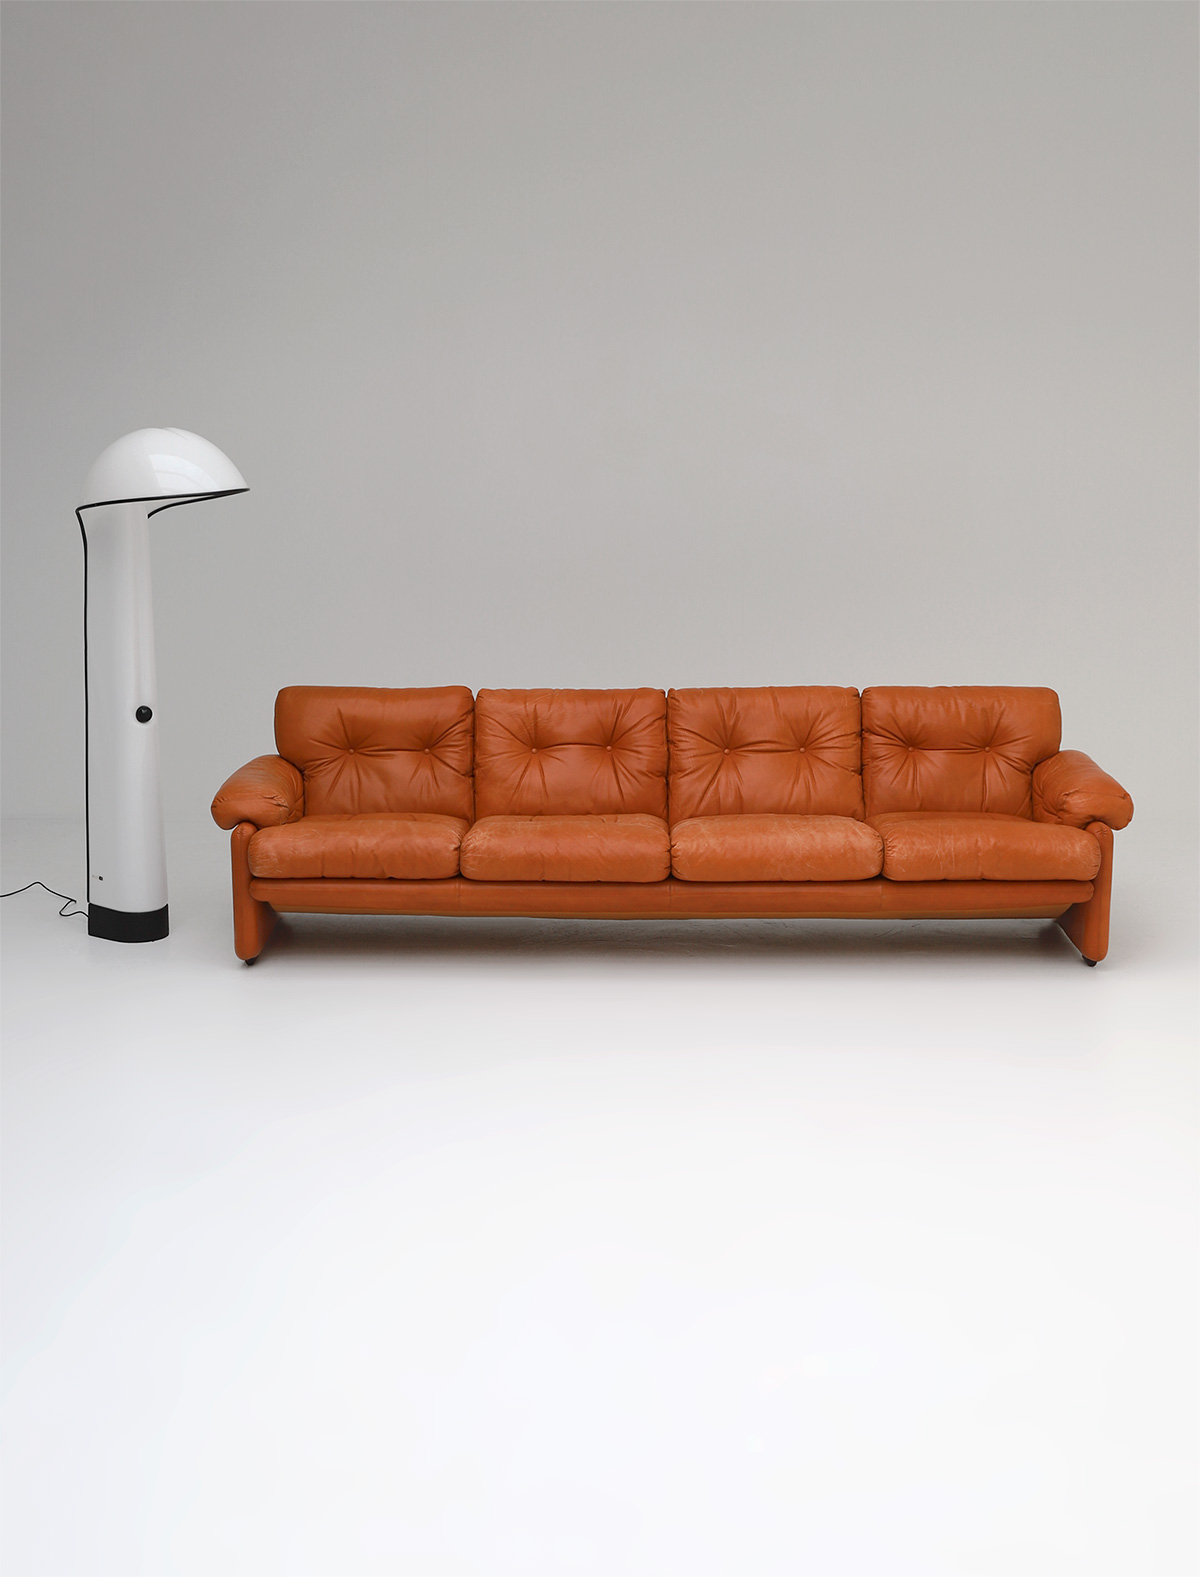 Tobia Scarpa 4 seat Cognac Leather Sofa B&B Italiaimage 1